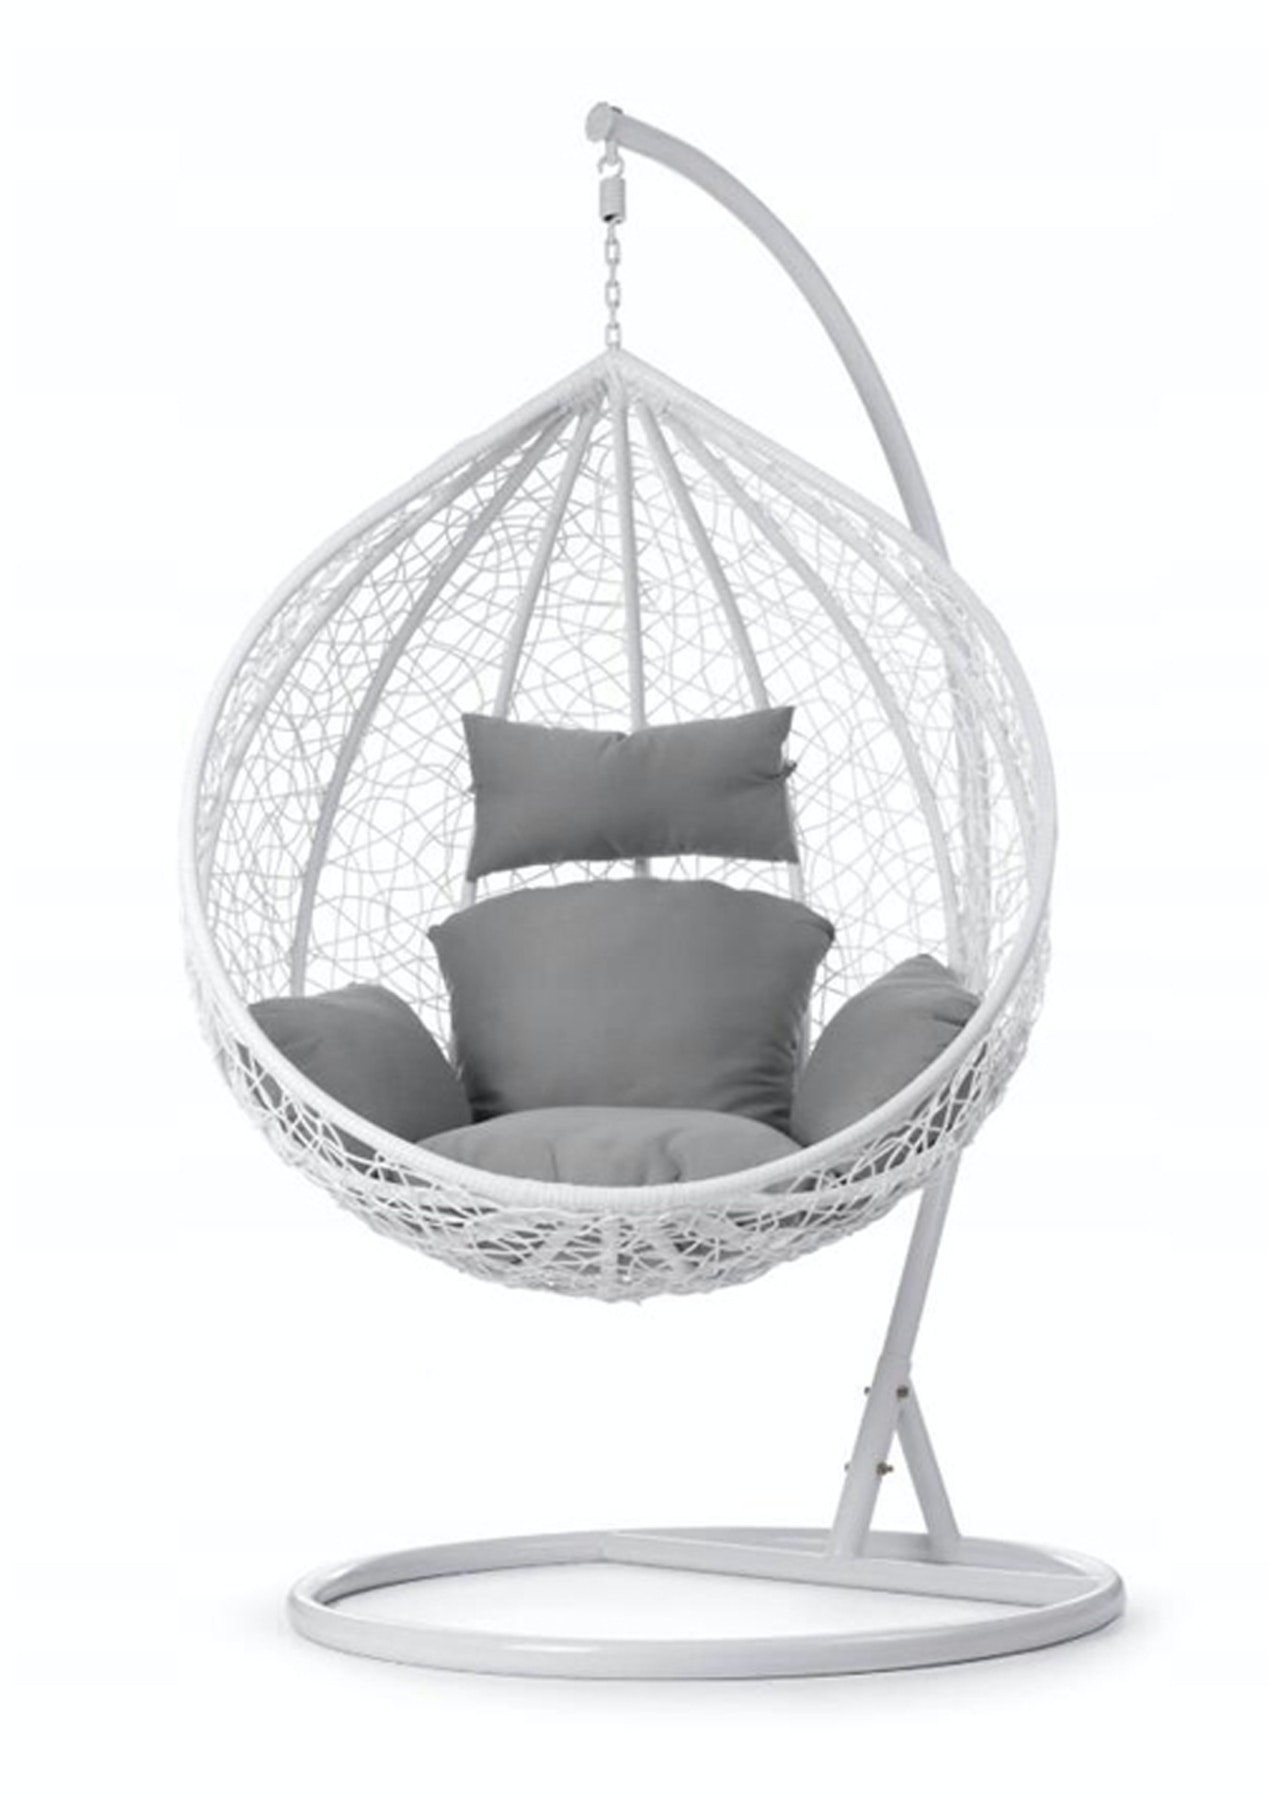 Superb Hanging Egg Chair Large Unemploymentrelief Wooden Chair Designs For Living Room Unemploymentrelieforg